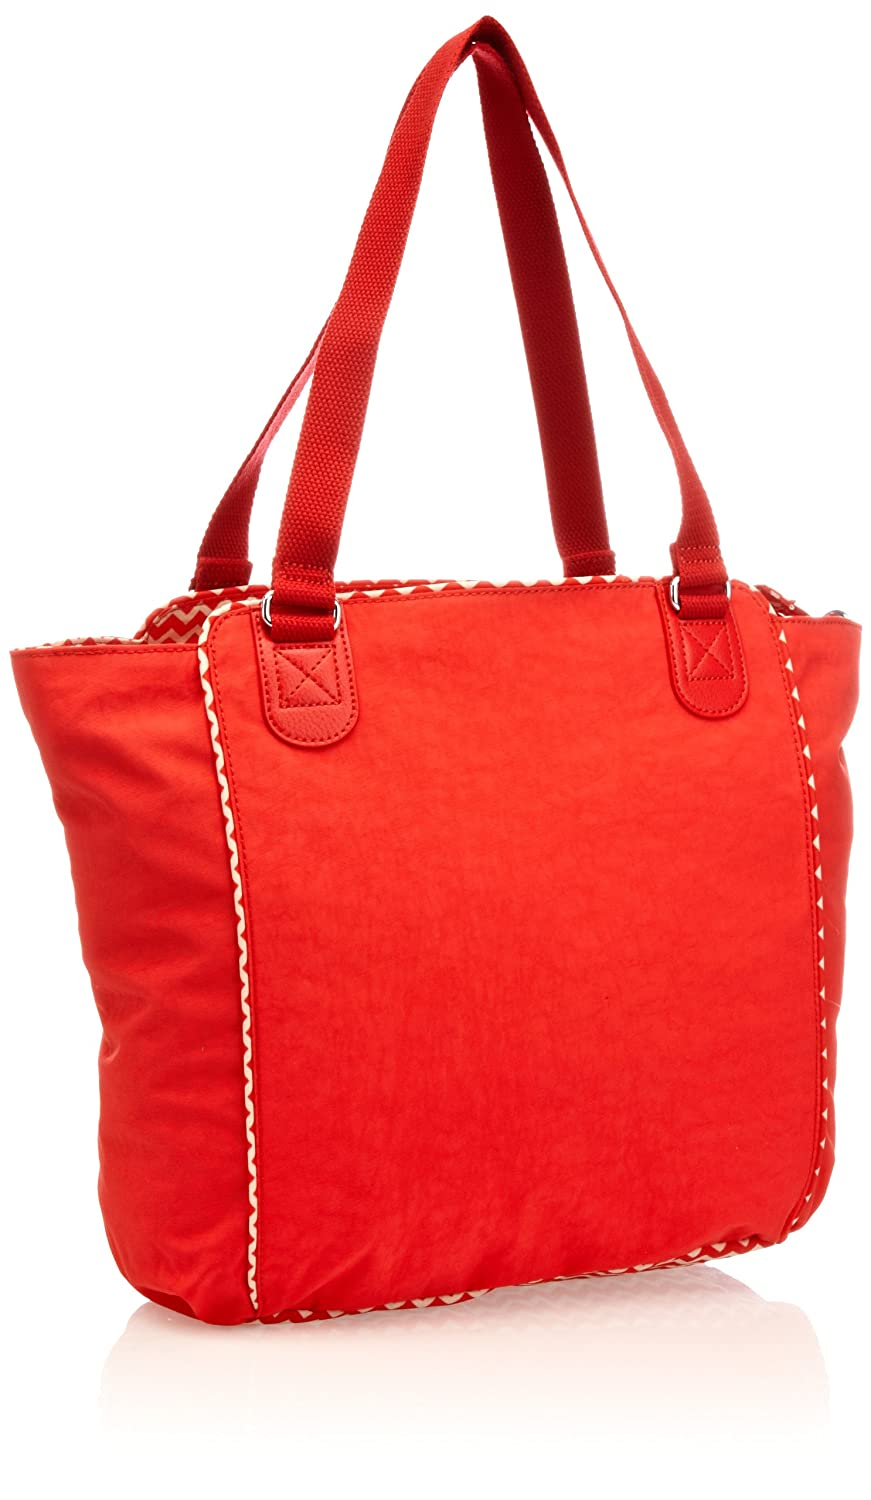 Kipling Womens Partylicious S Tote One Size Cardinal Red Pa